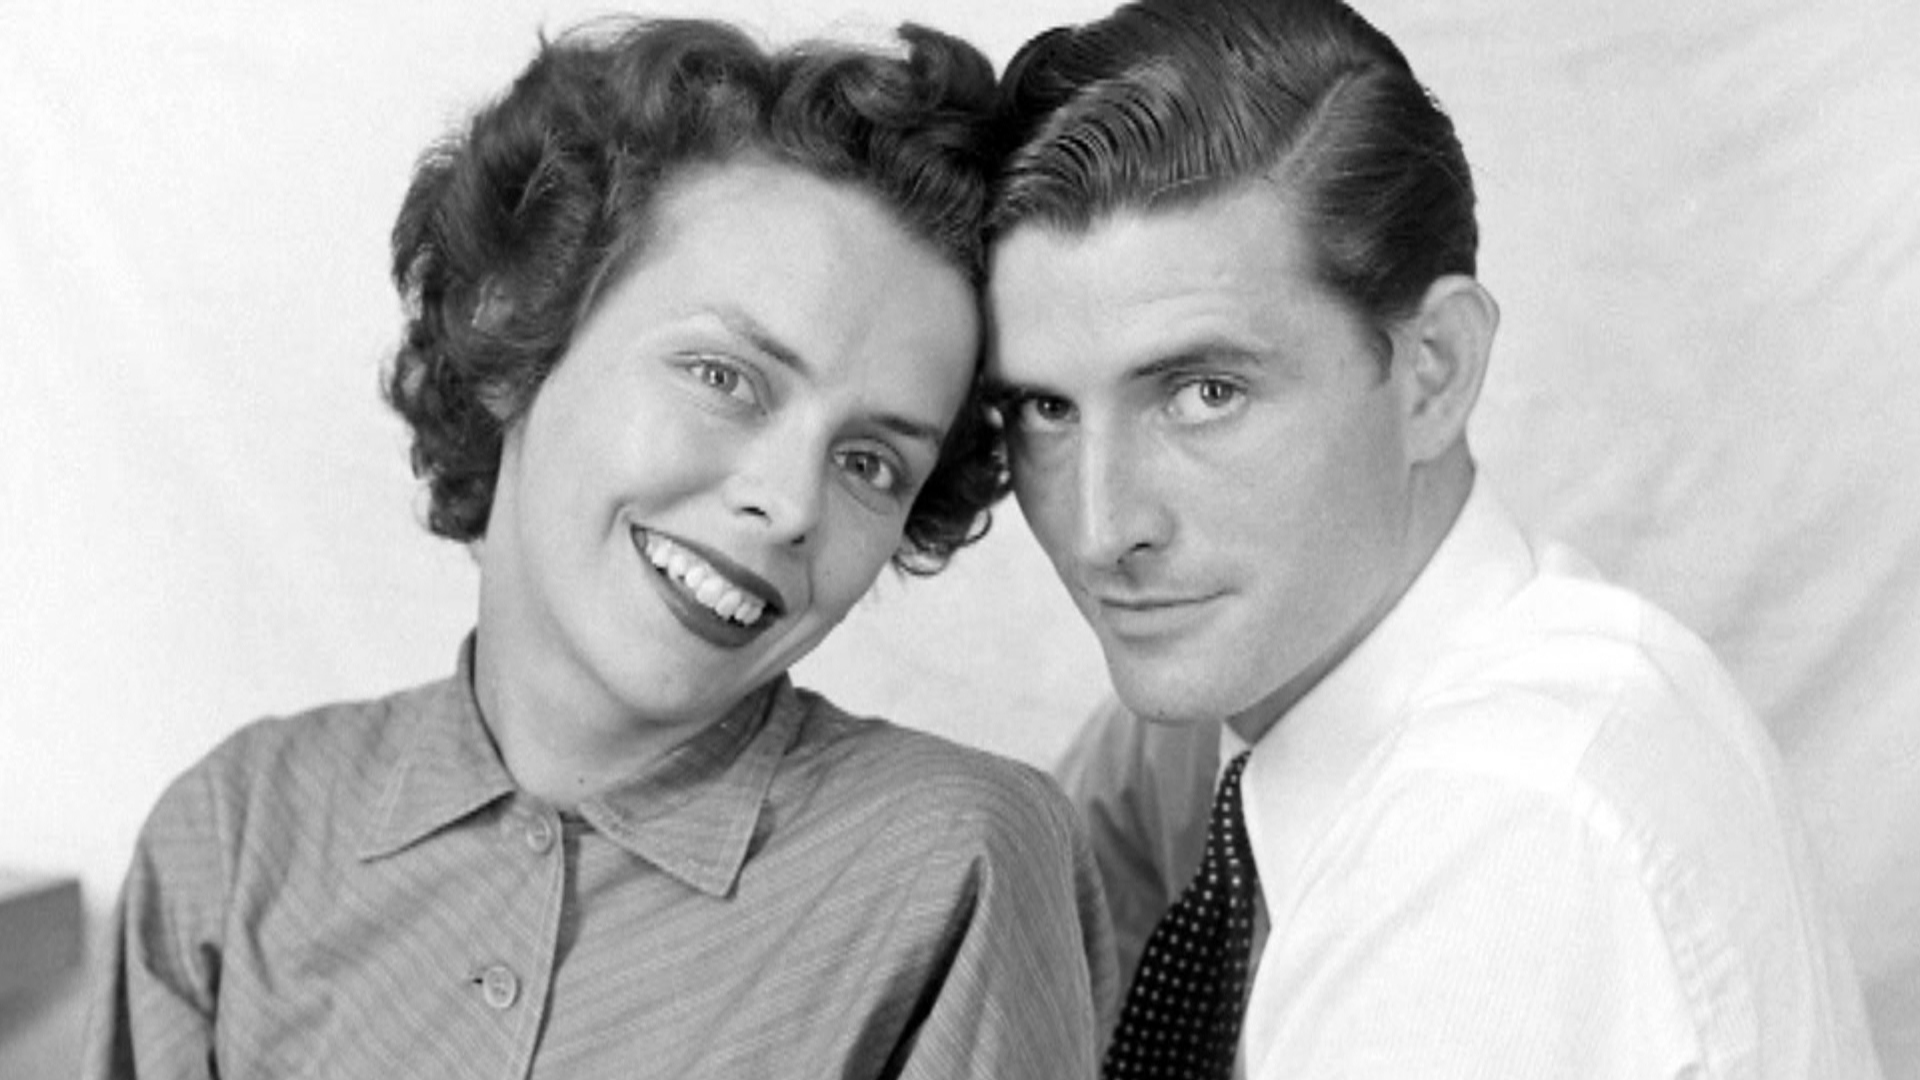 She redefined the business modeling agency pioneer eileen ford dies at 92